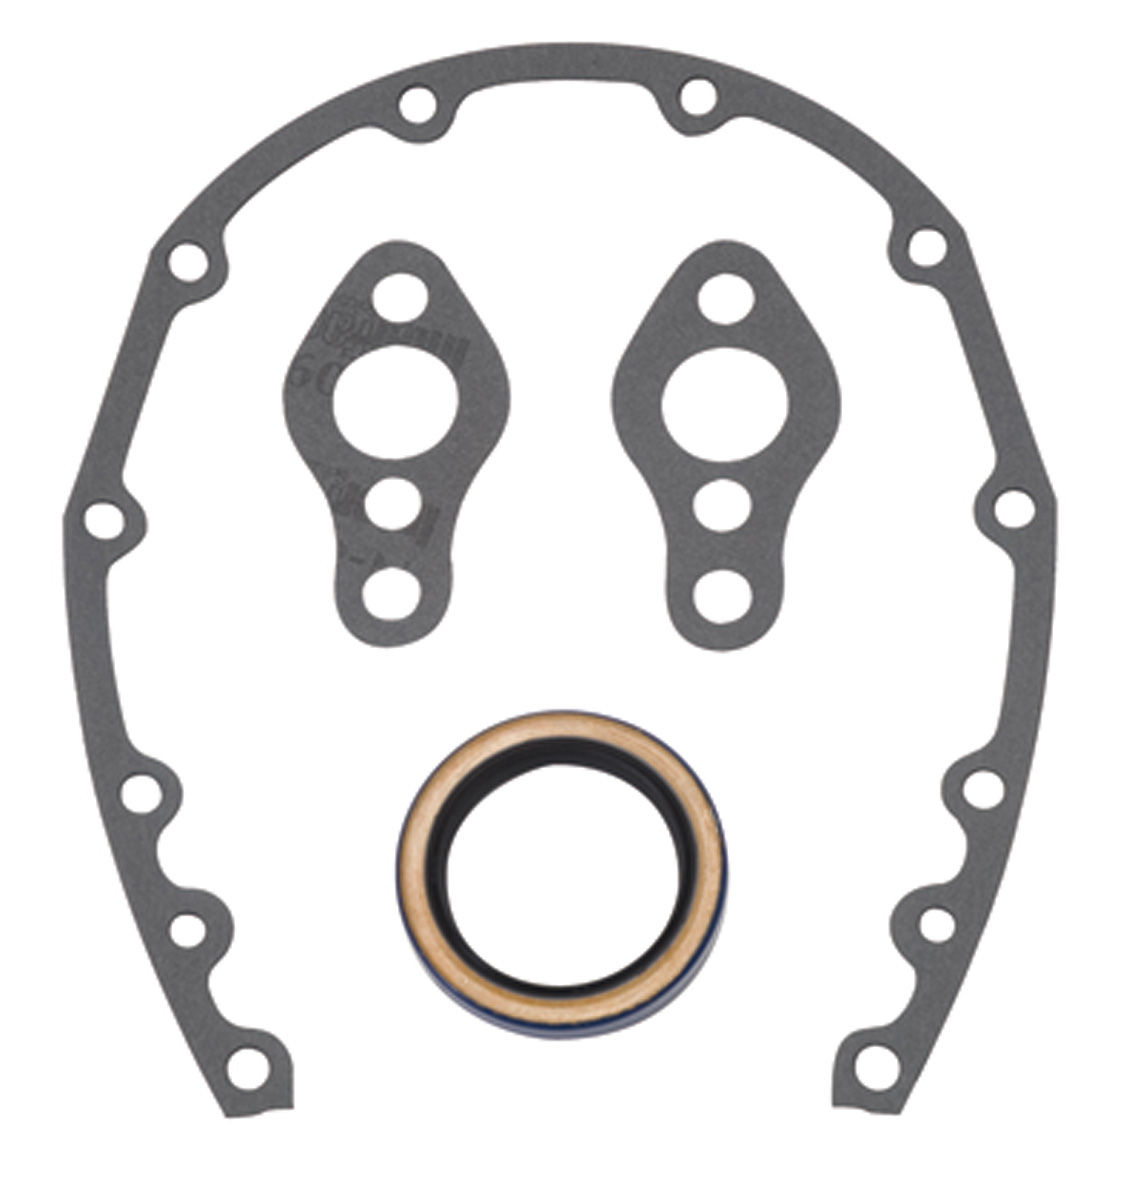 Photo of Timing Cover Gaskets, High-Performance Small Block